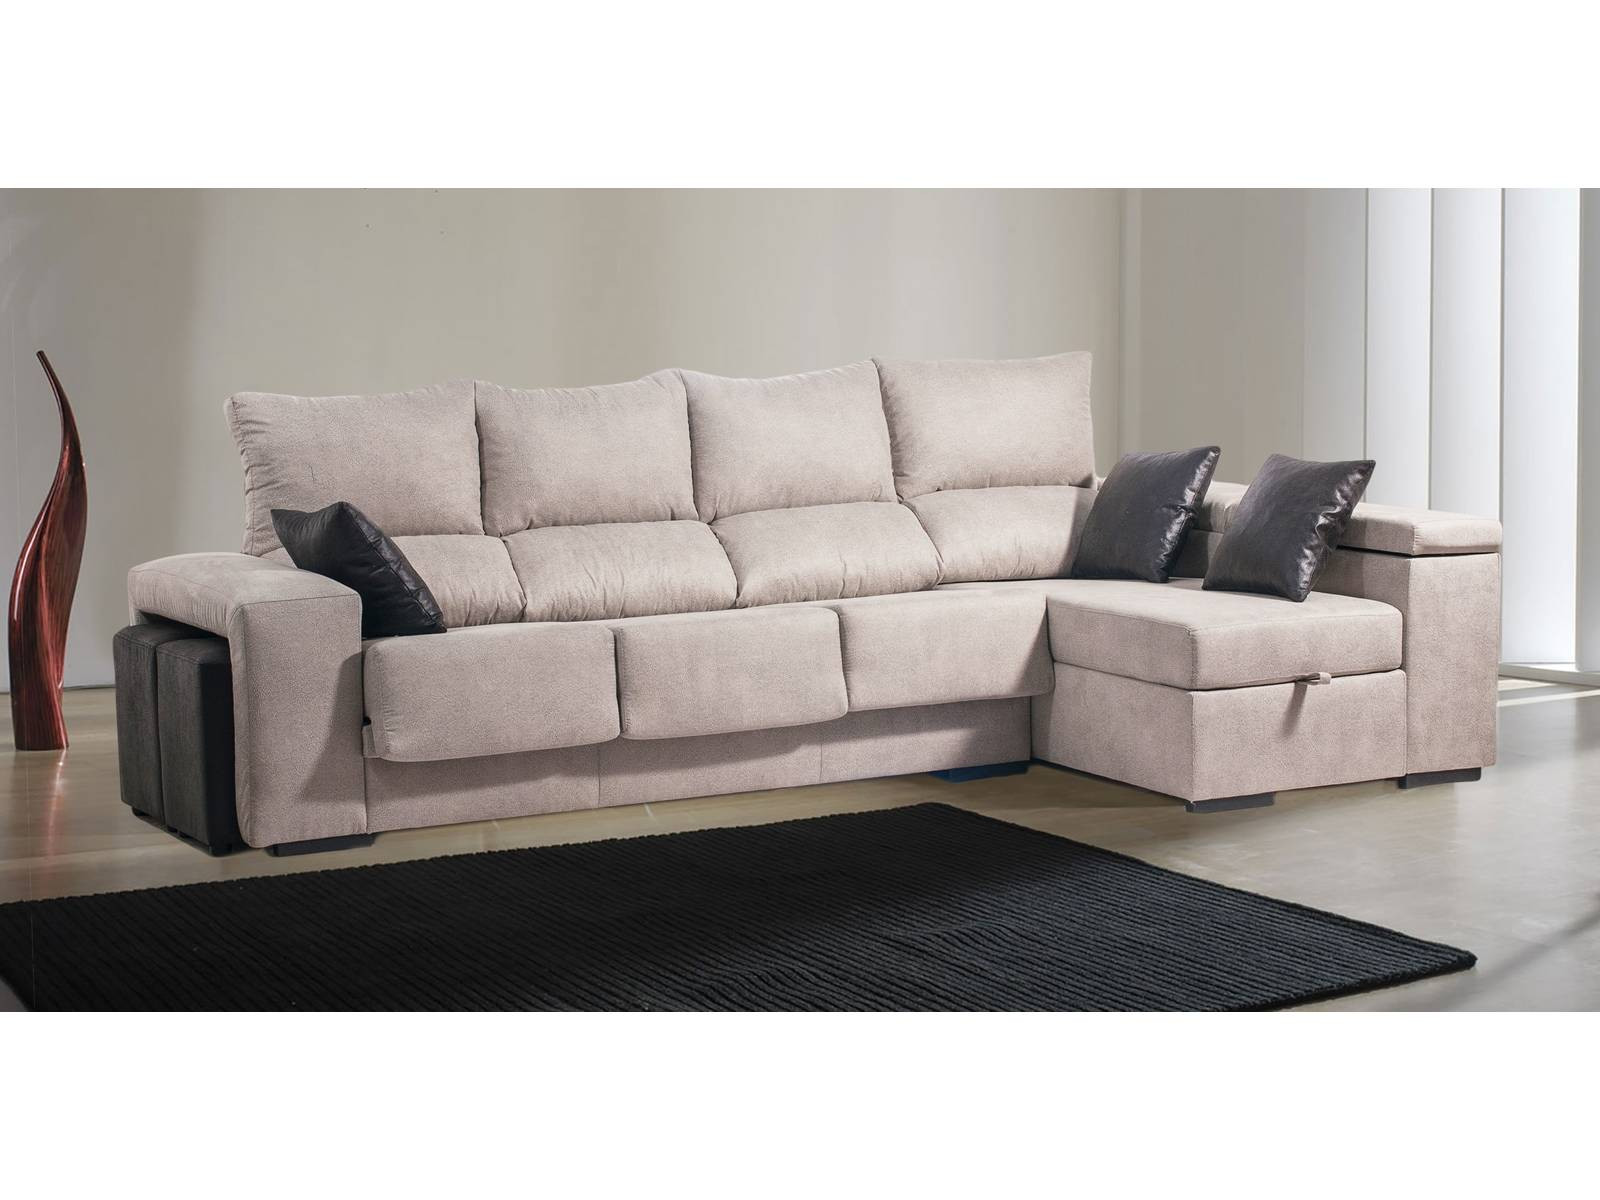 Sofas 5 Plazas Chaise Longue Magnífico Chaise Longue sofa Modern Chaise Longue sofas Quality From Of Sofas 5 Plazas Chaise Longue Arriba sofás 4 Plazas Con Chaise Longue